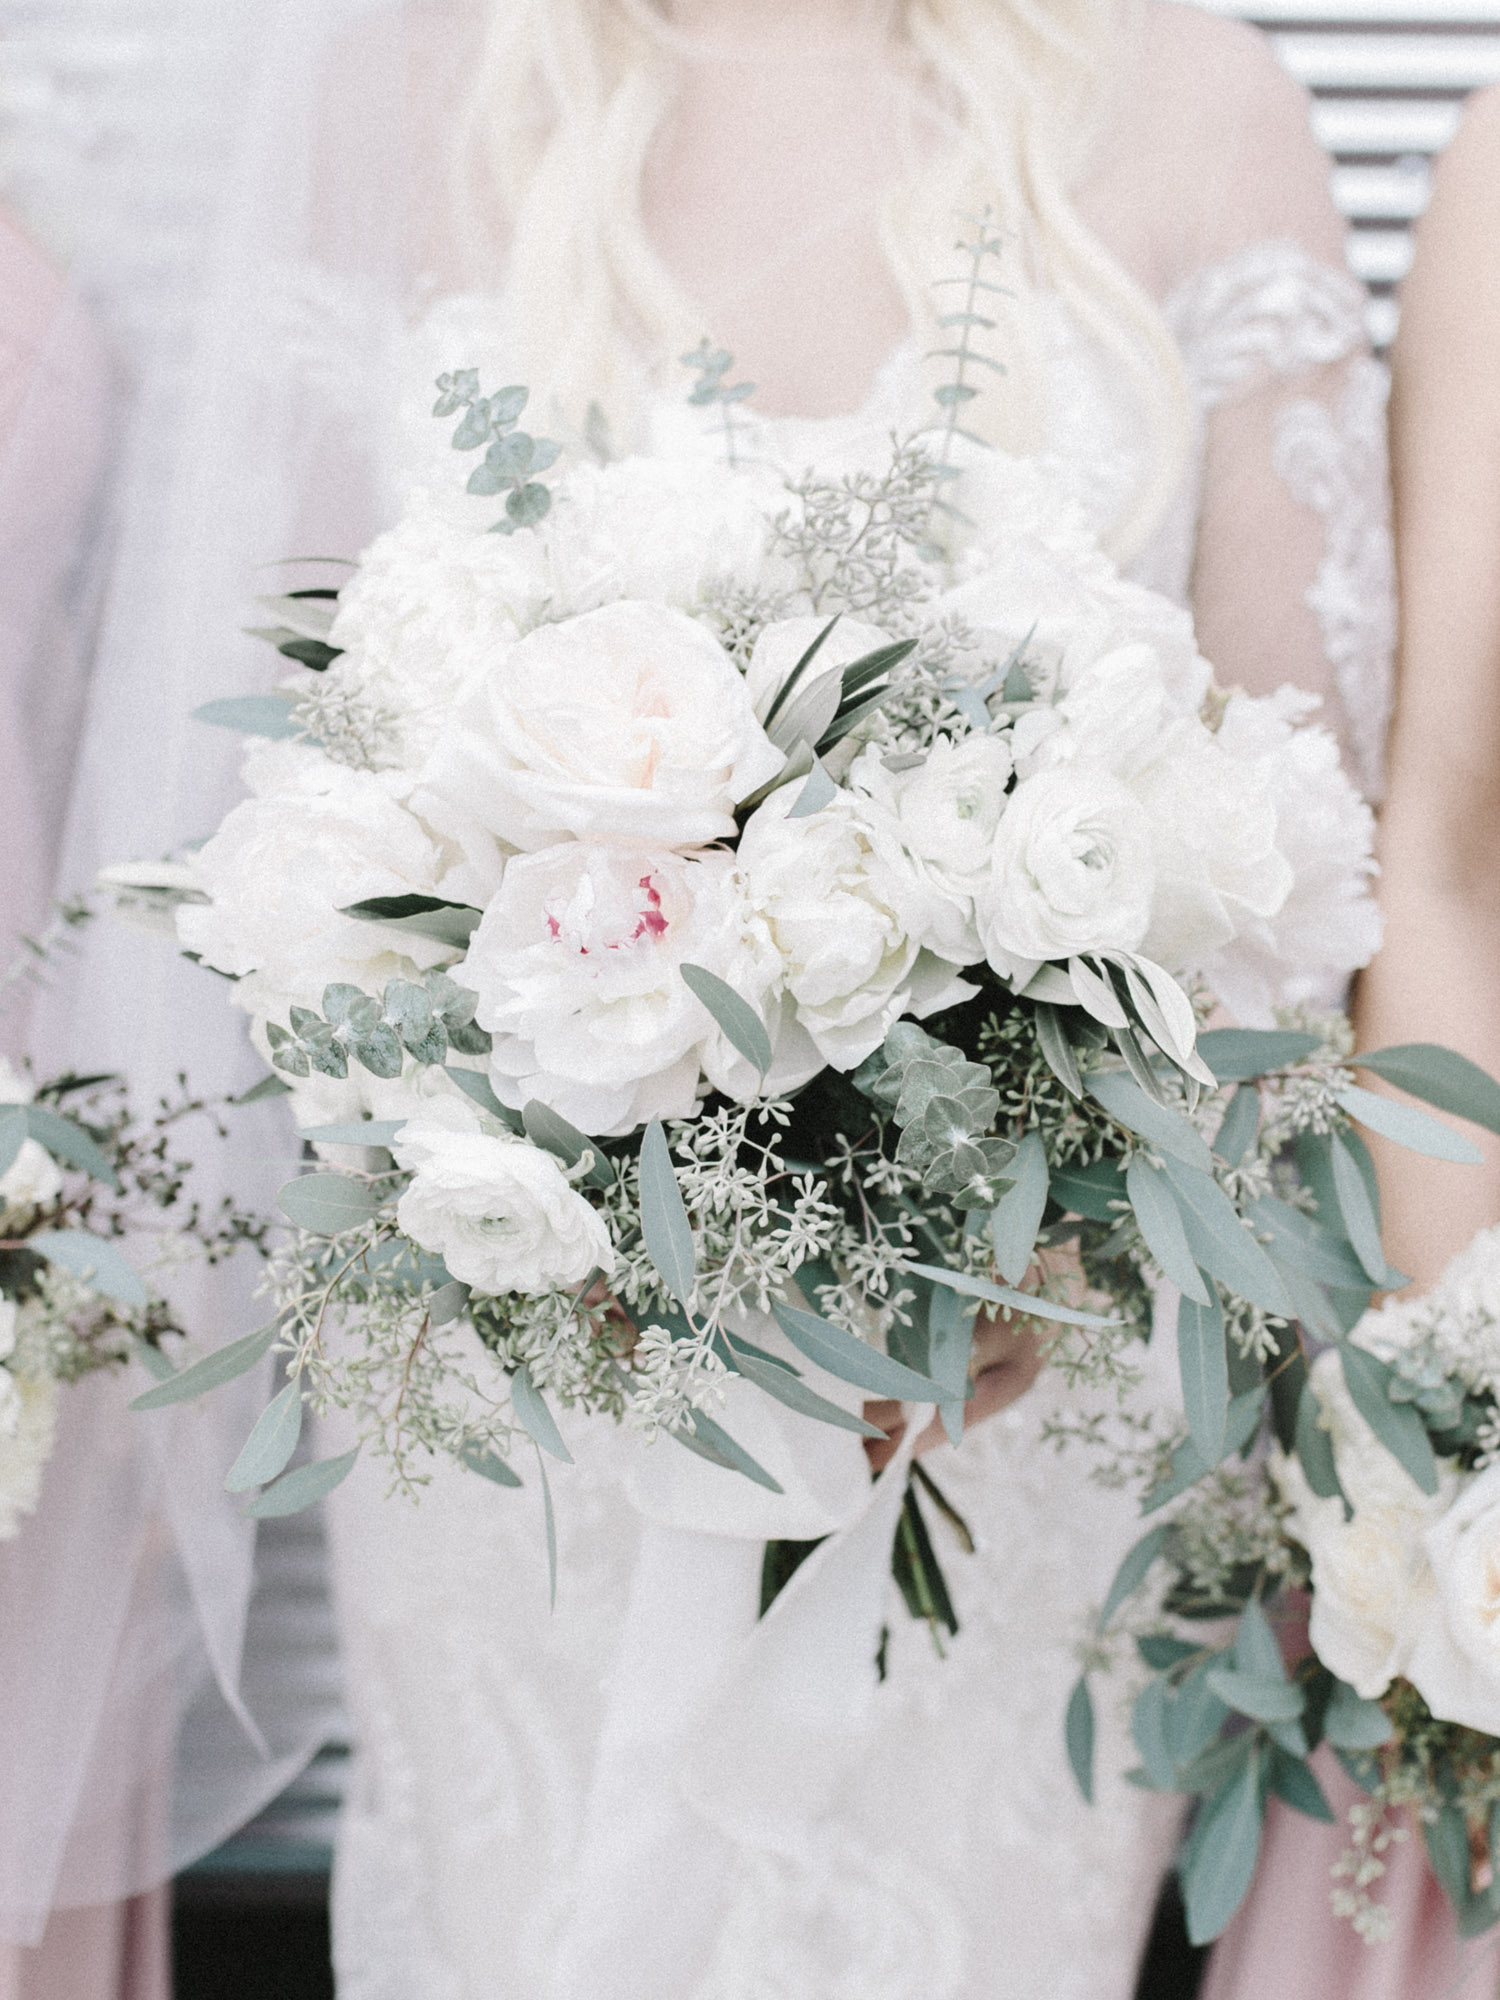 A white, blush, and green bridal bouquet with greenery and seeded eucalyptus at an Indiana wedding